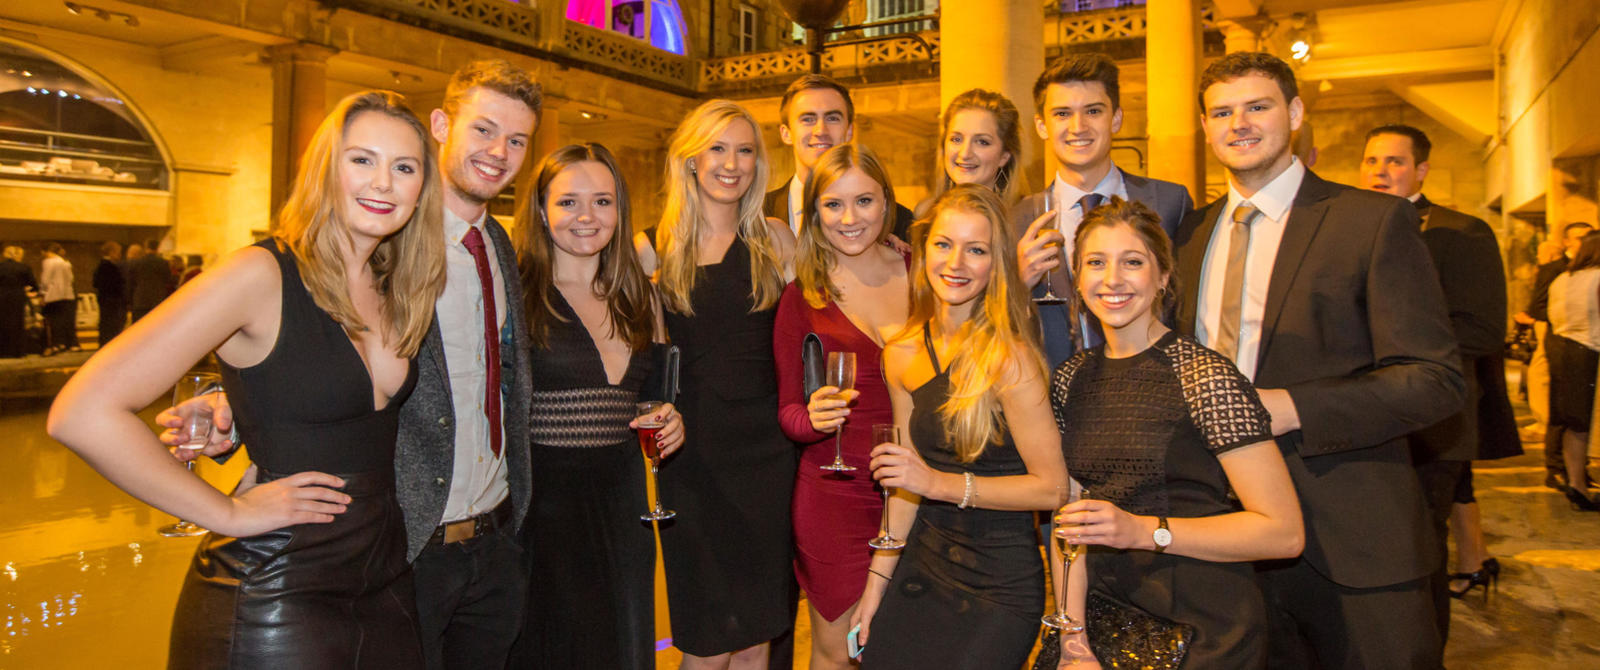 Image: Christmas party group at the Roman Baths